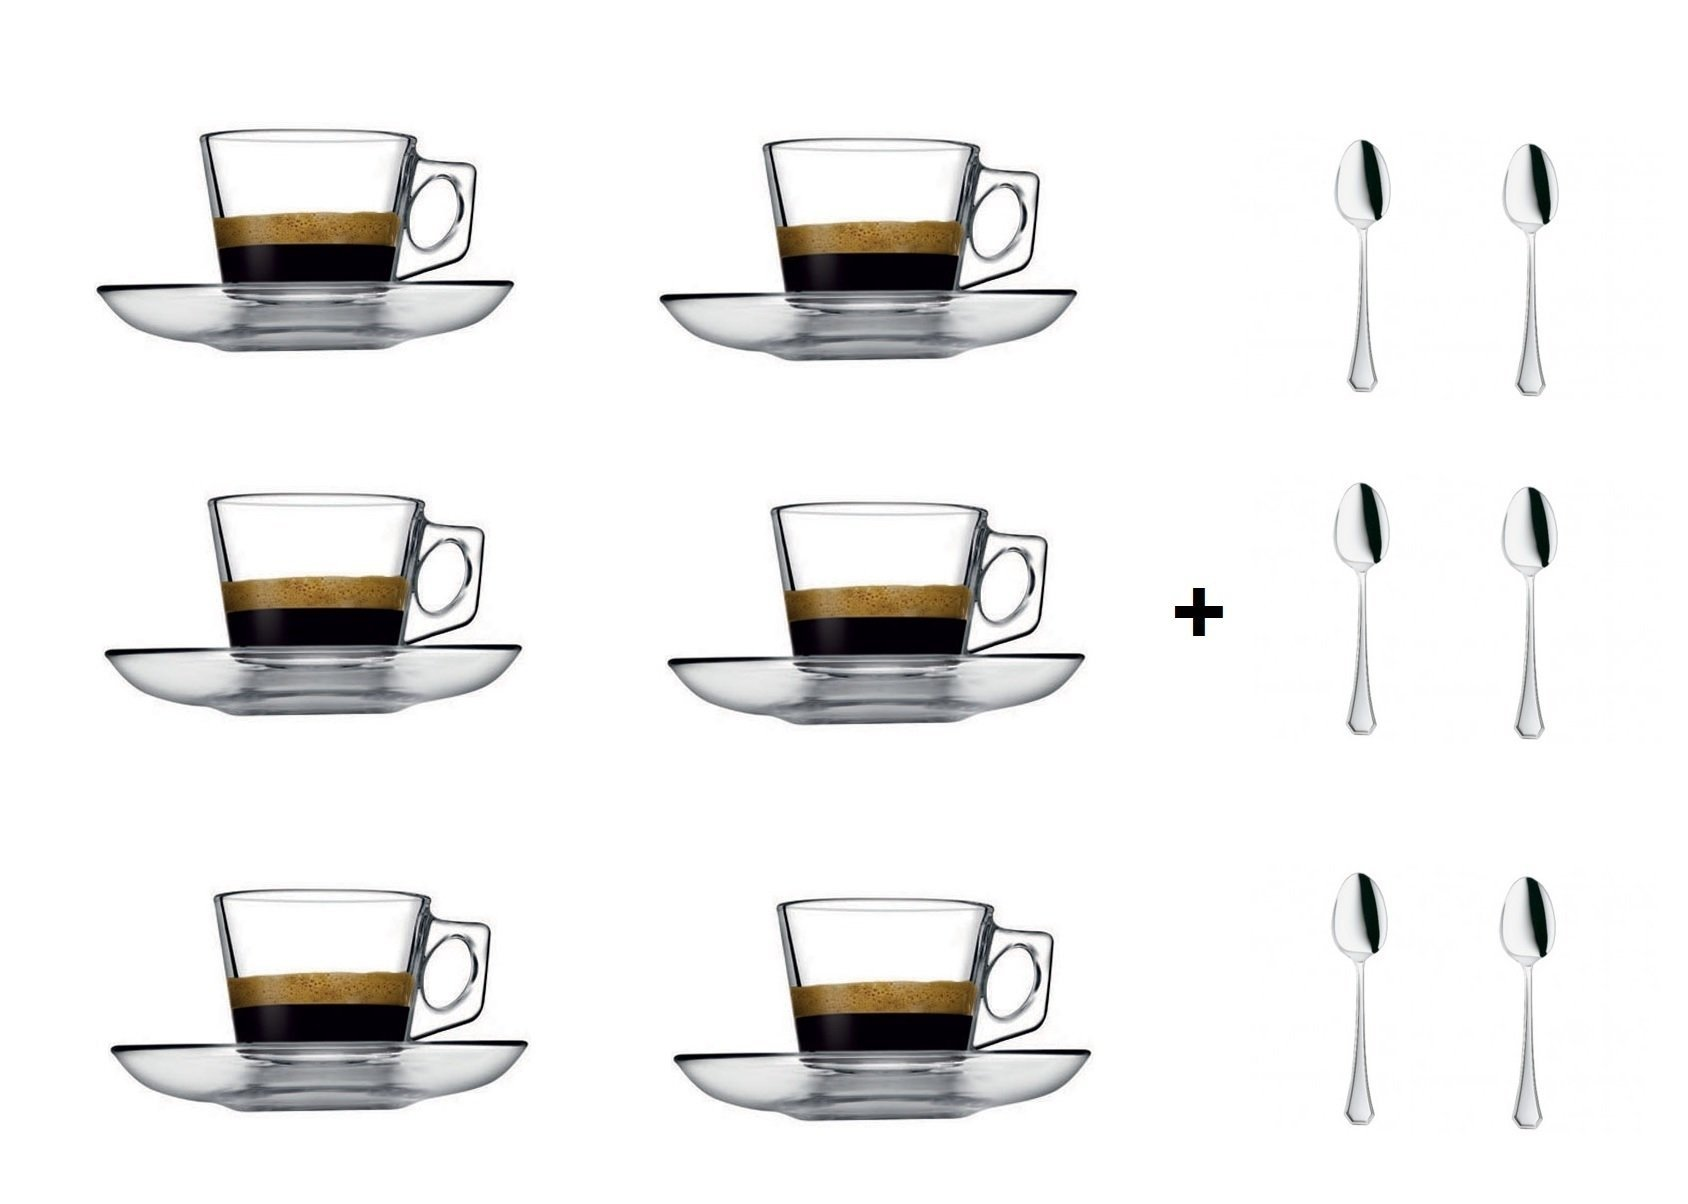 VELA 3.2-Ounce. Small Demitasse Clear Glass Espresso Drinkware, Set of 6 Cups/Saucers + Set of 6 Stainless Steel 18/10 mini Espresso Spoons! Hostess, Coffee Lover/Enthusiast, Espresso.